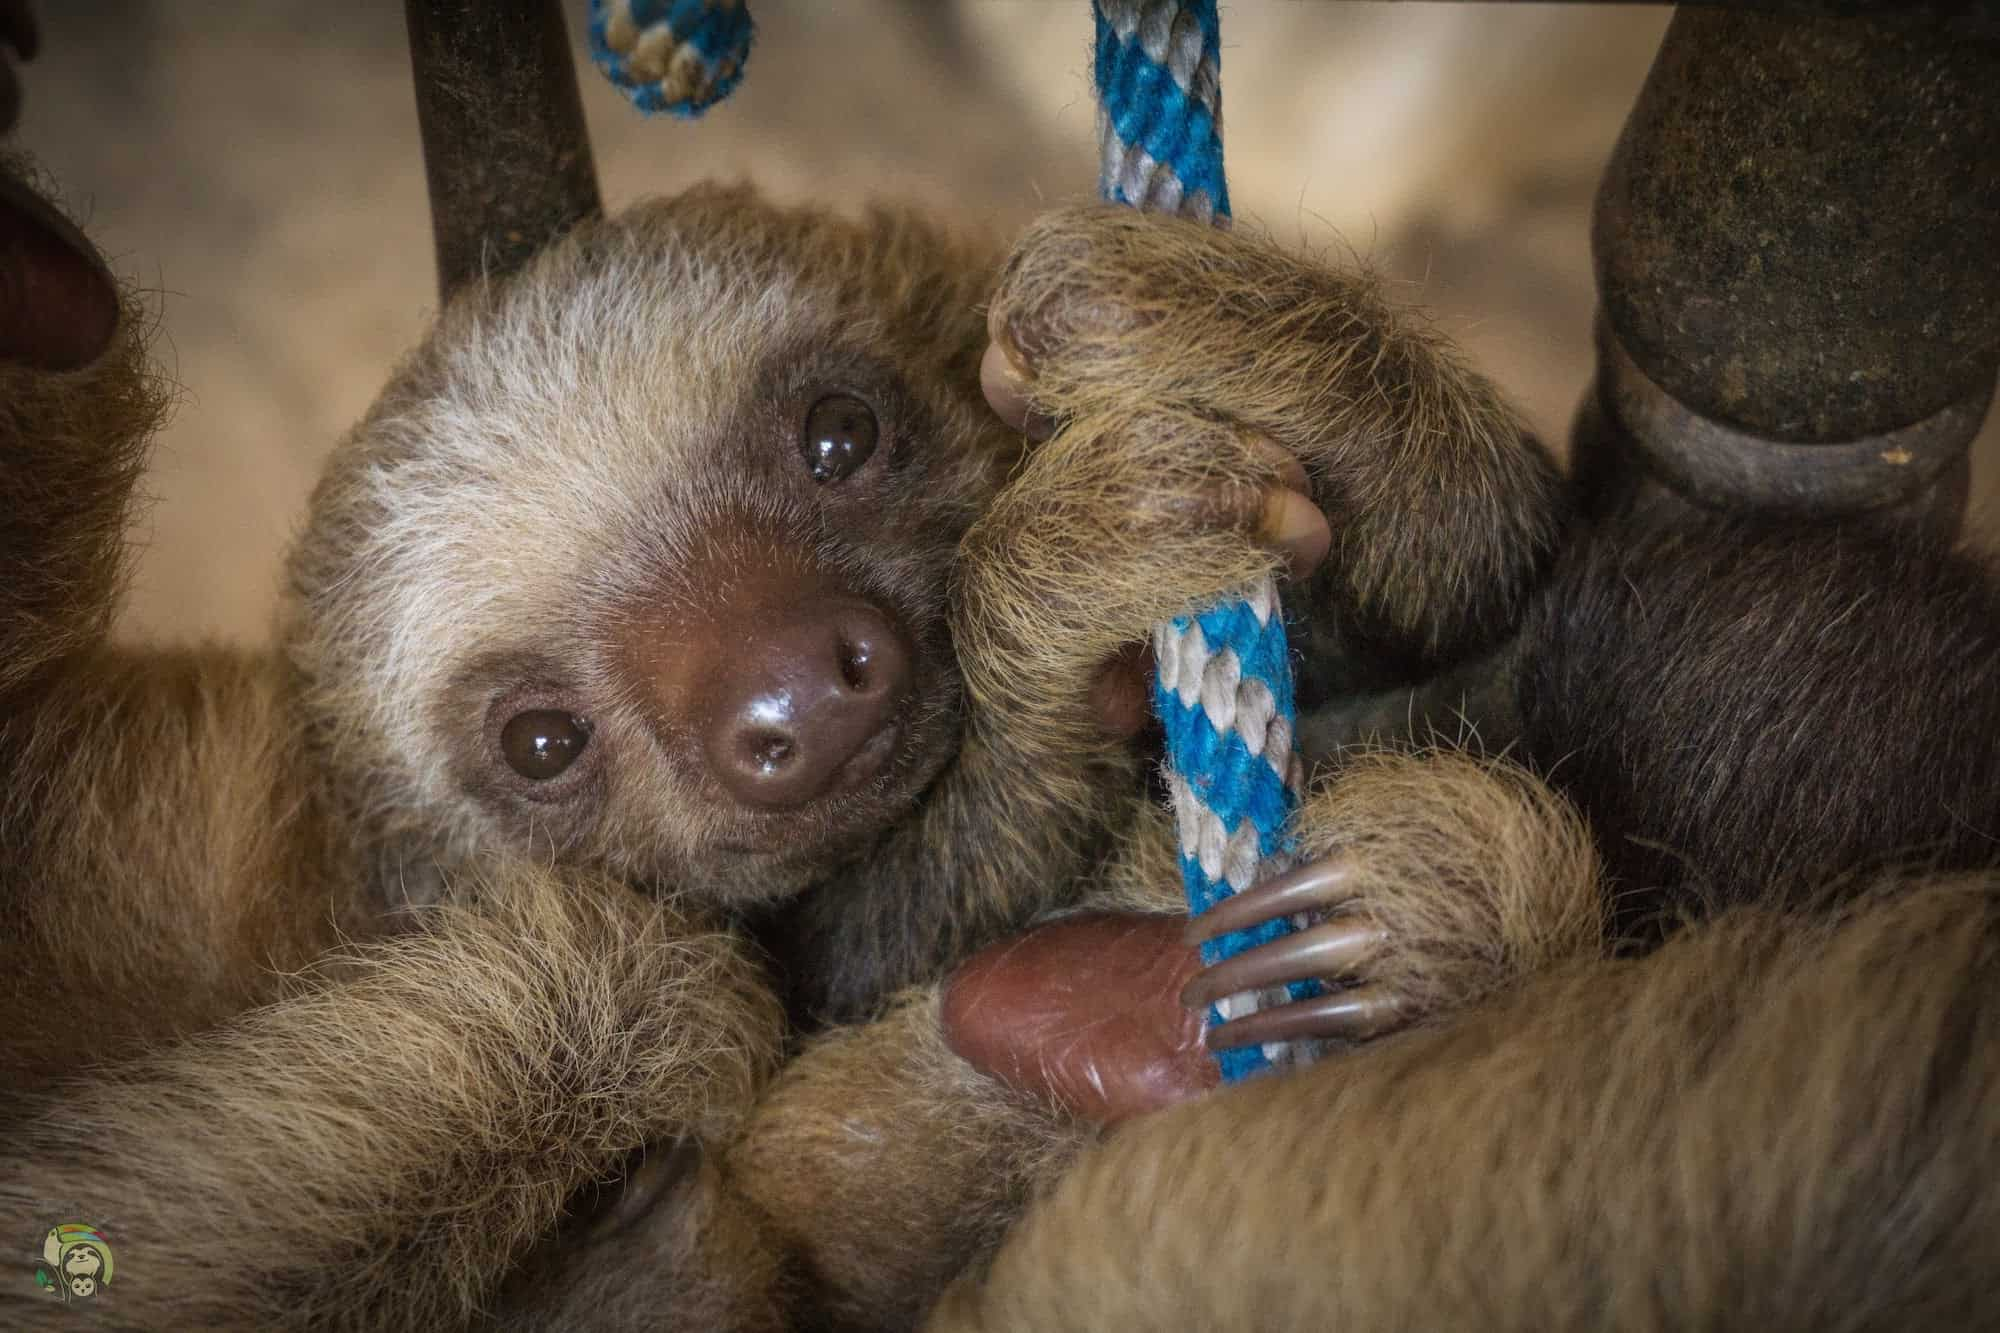 Arya, a two-fingered sloth in Costa Rica